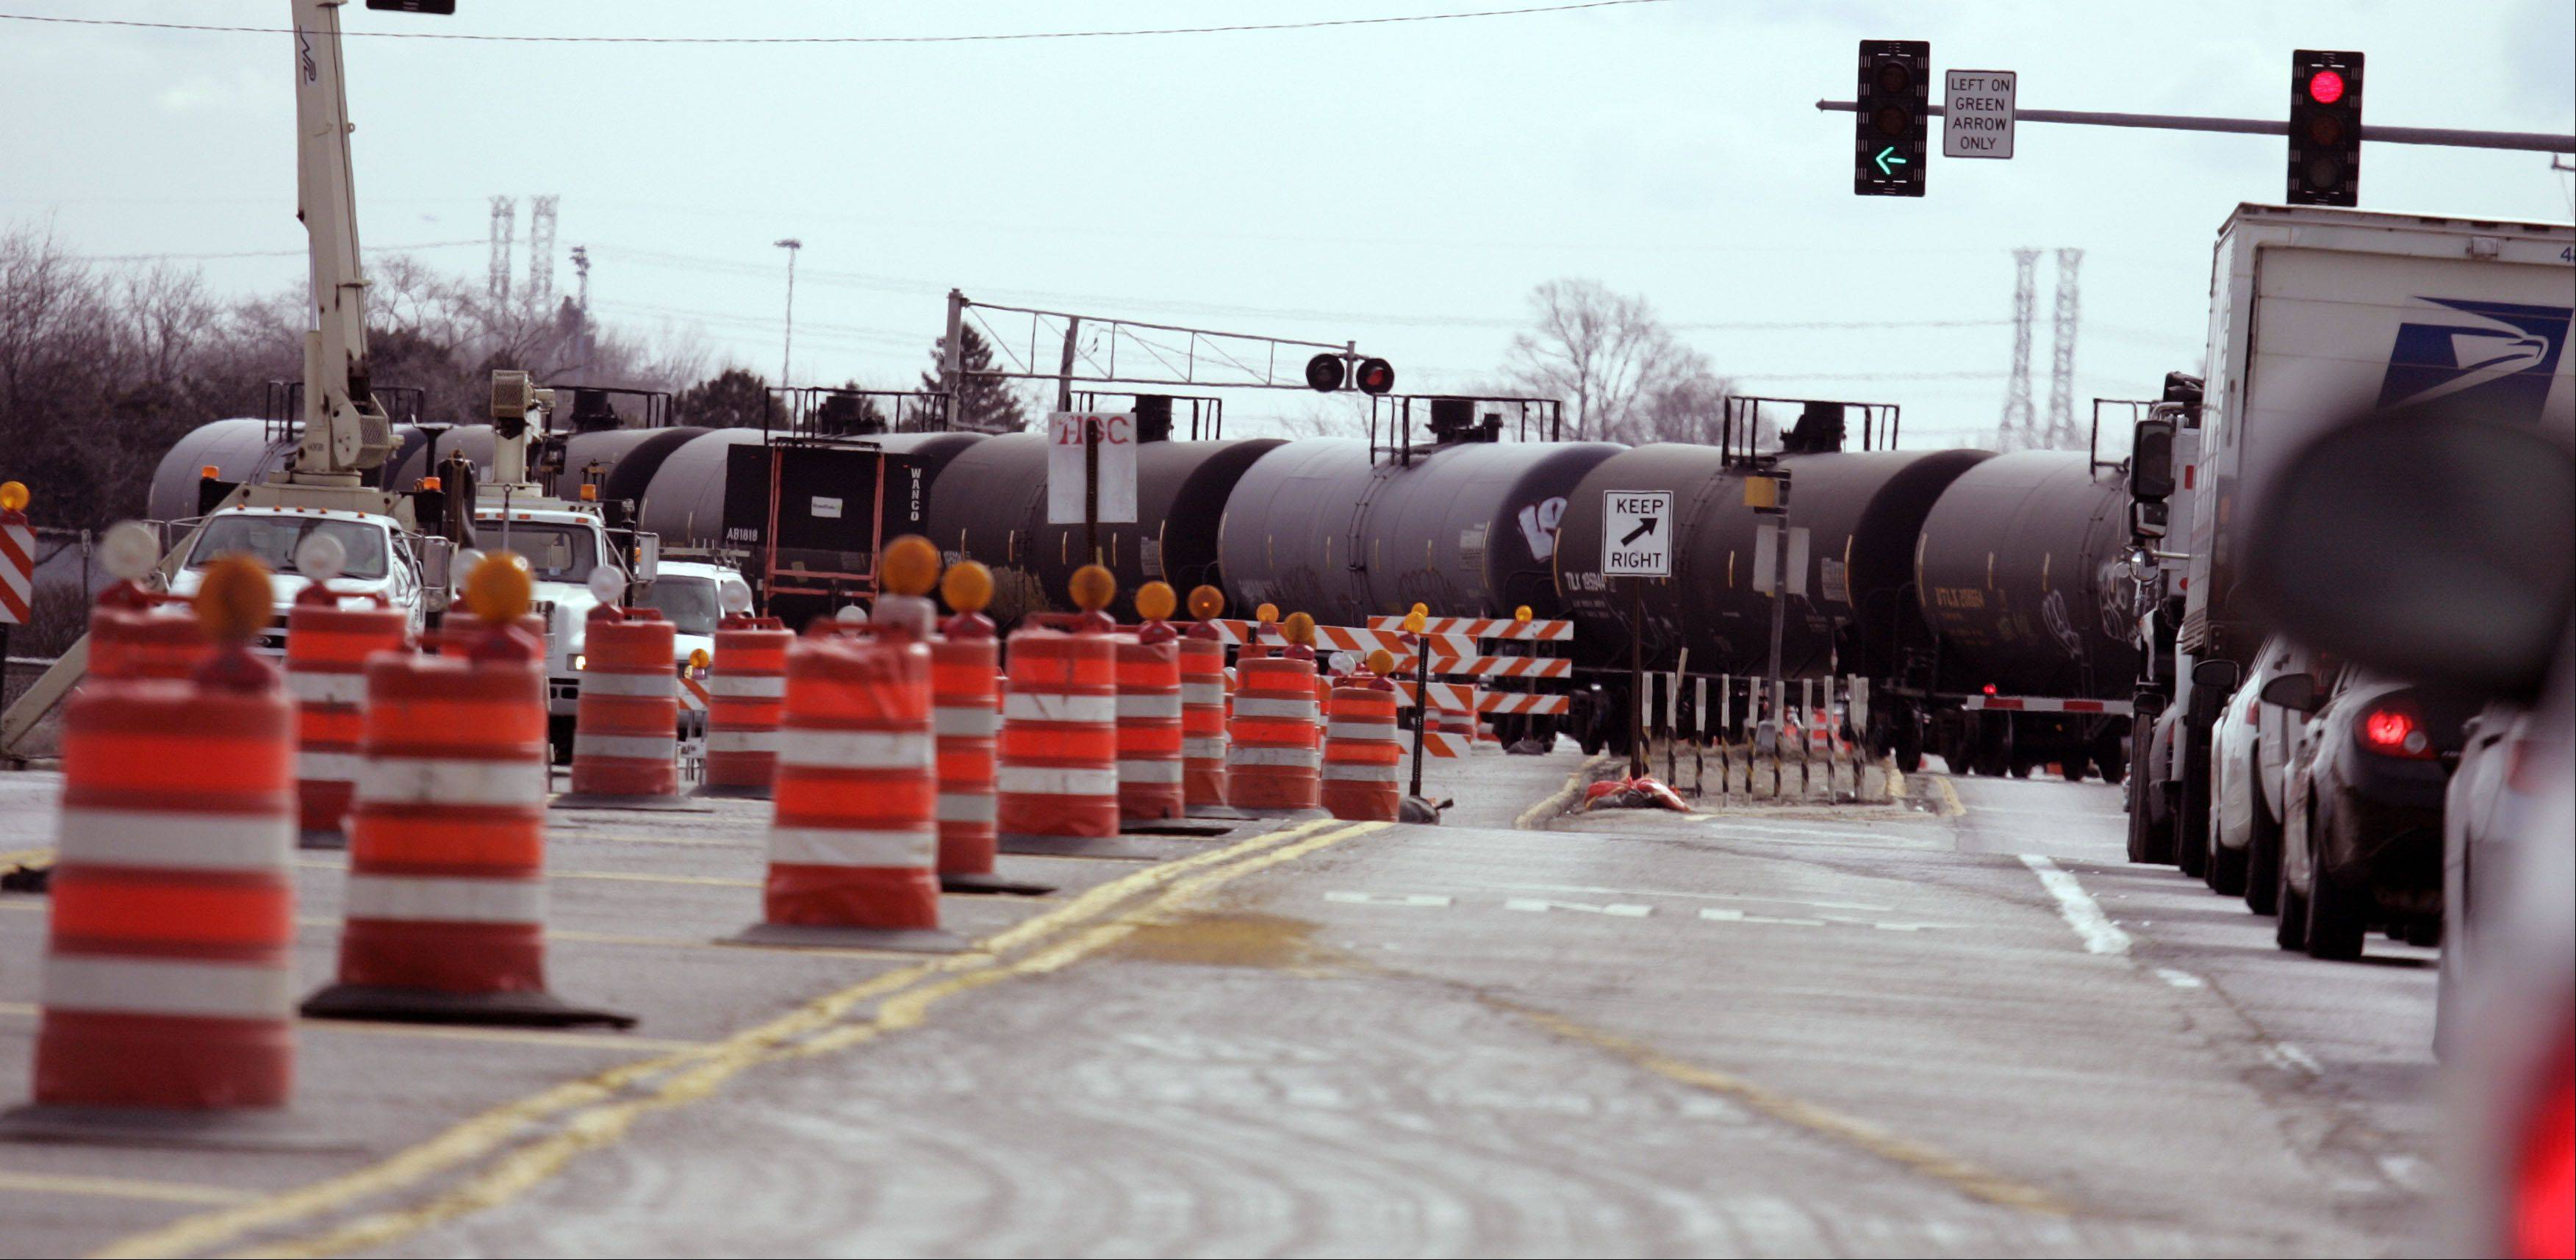 Overpass work is ongoing at the Geneva/West Chicago border at the railroad tracks on Route 38 and